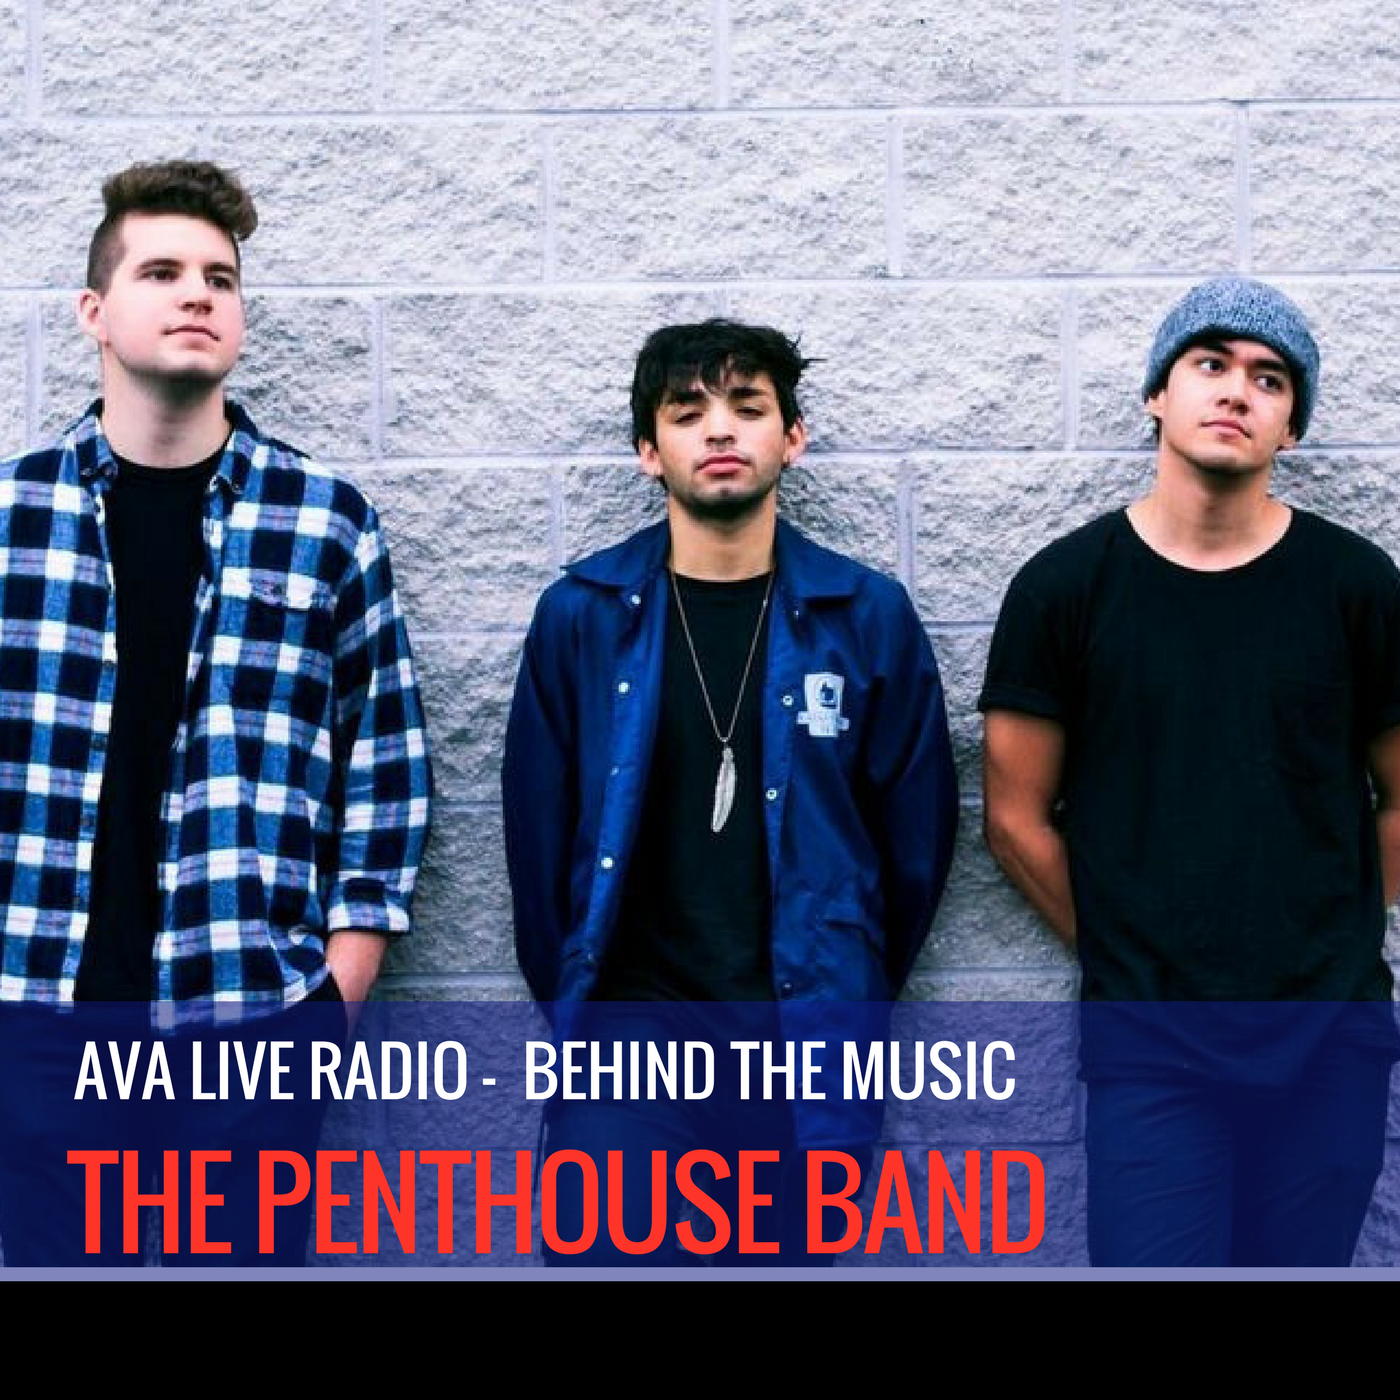 The-Penthouse-Band-avaliveradio-music.png